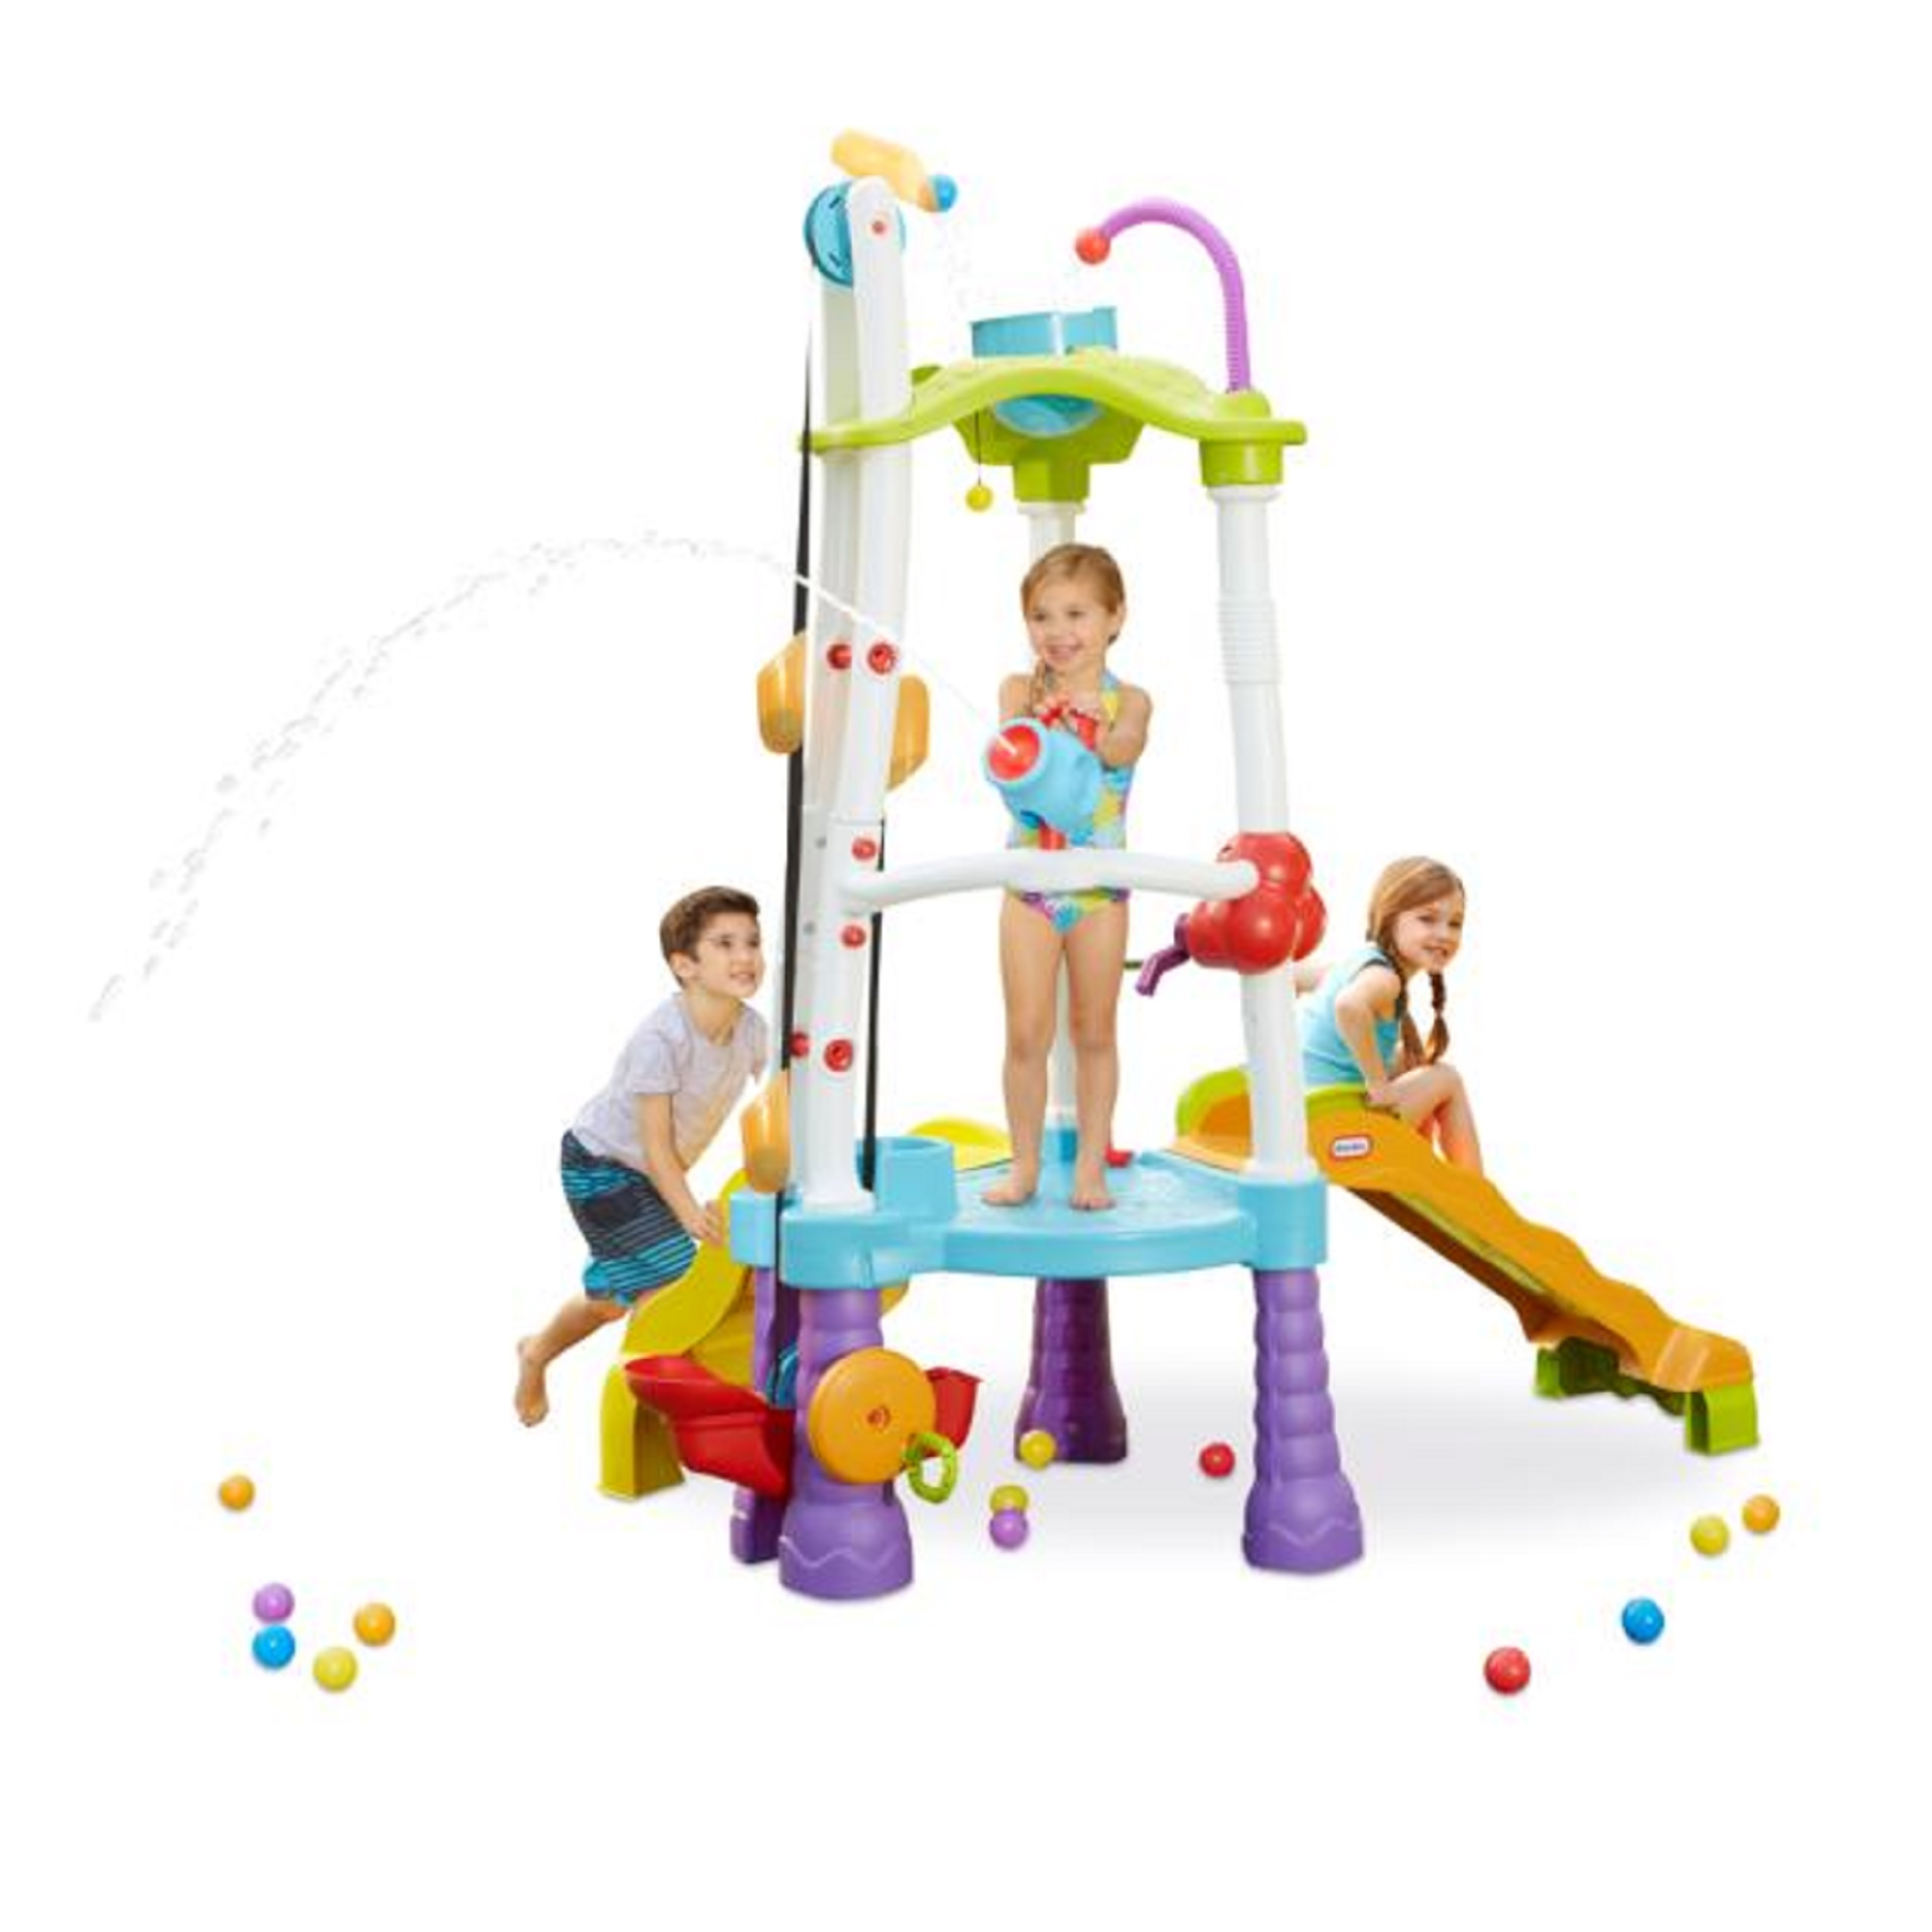 Little Tikes Fun Zone Tumblin' Tower Climber, Indoor/Outdoor